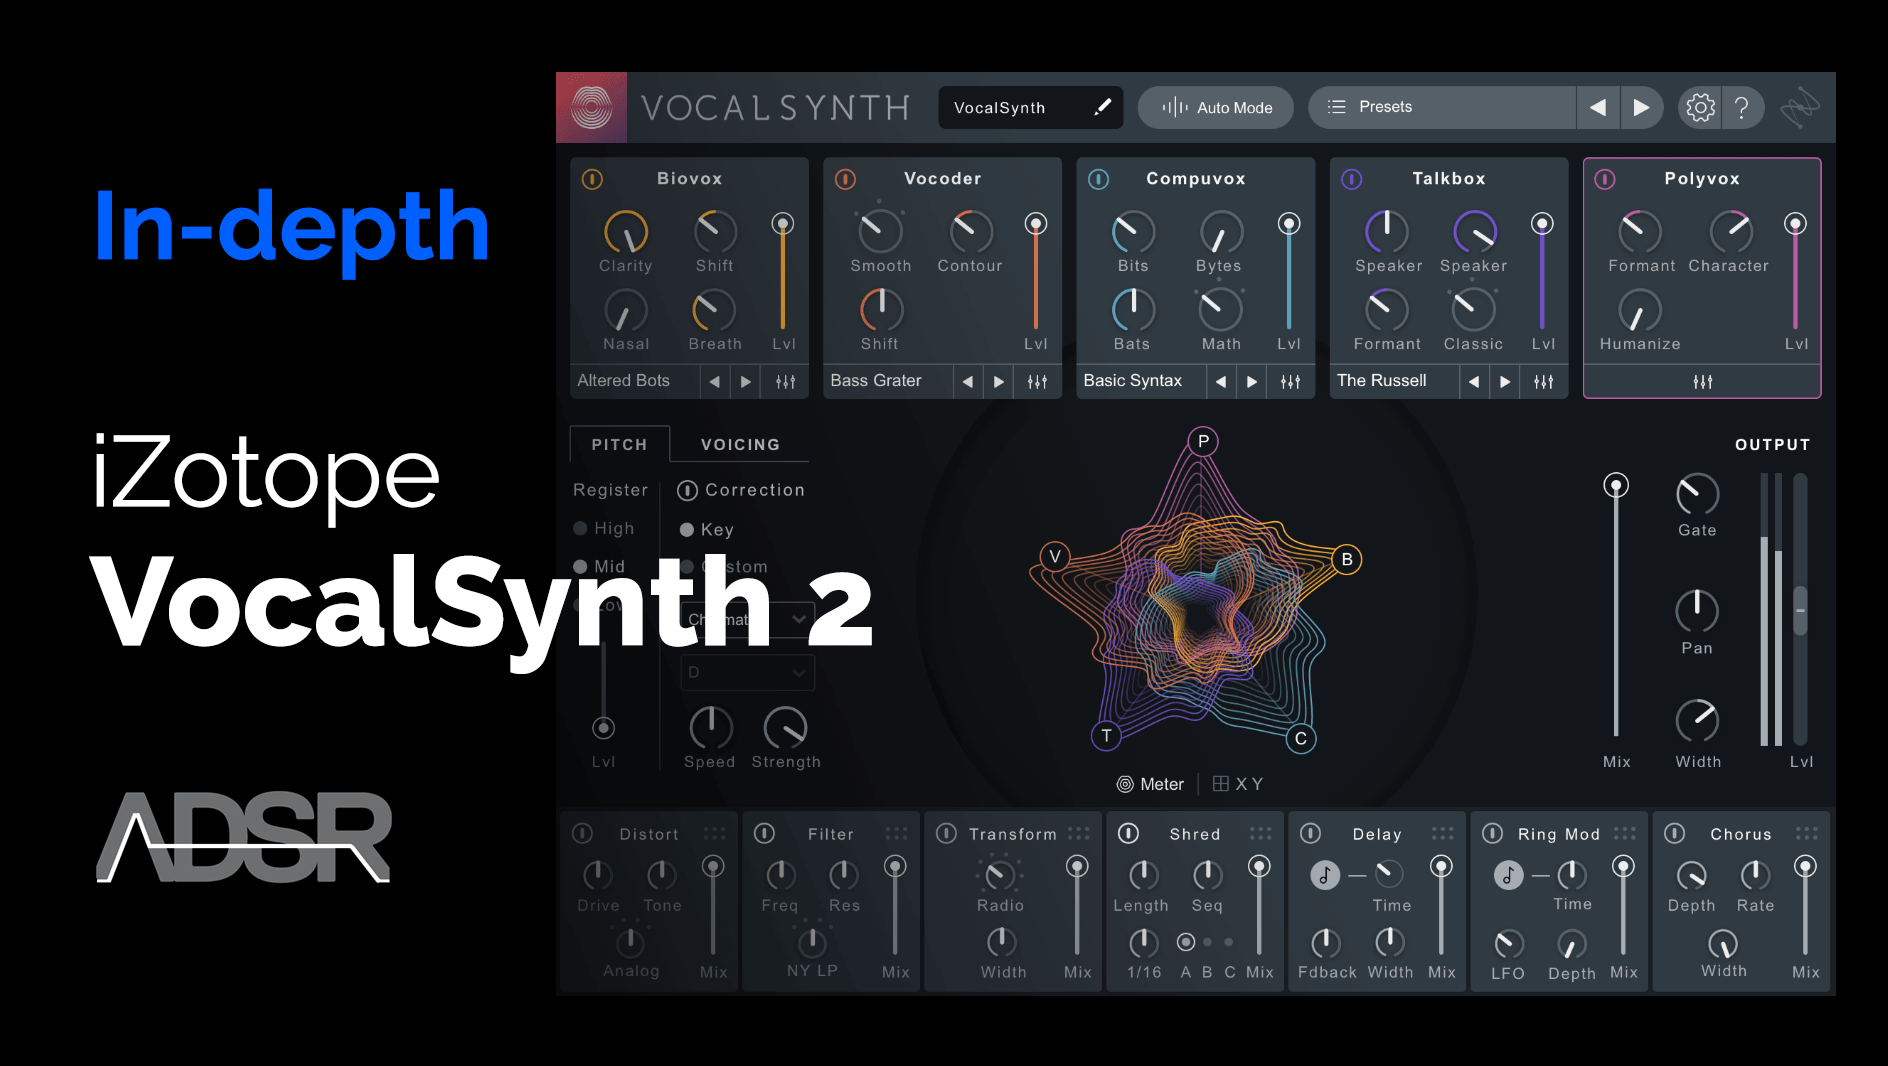 Learn how to master VocalSynth 2 from iZotope